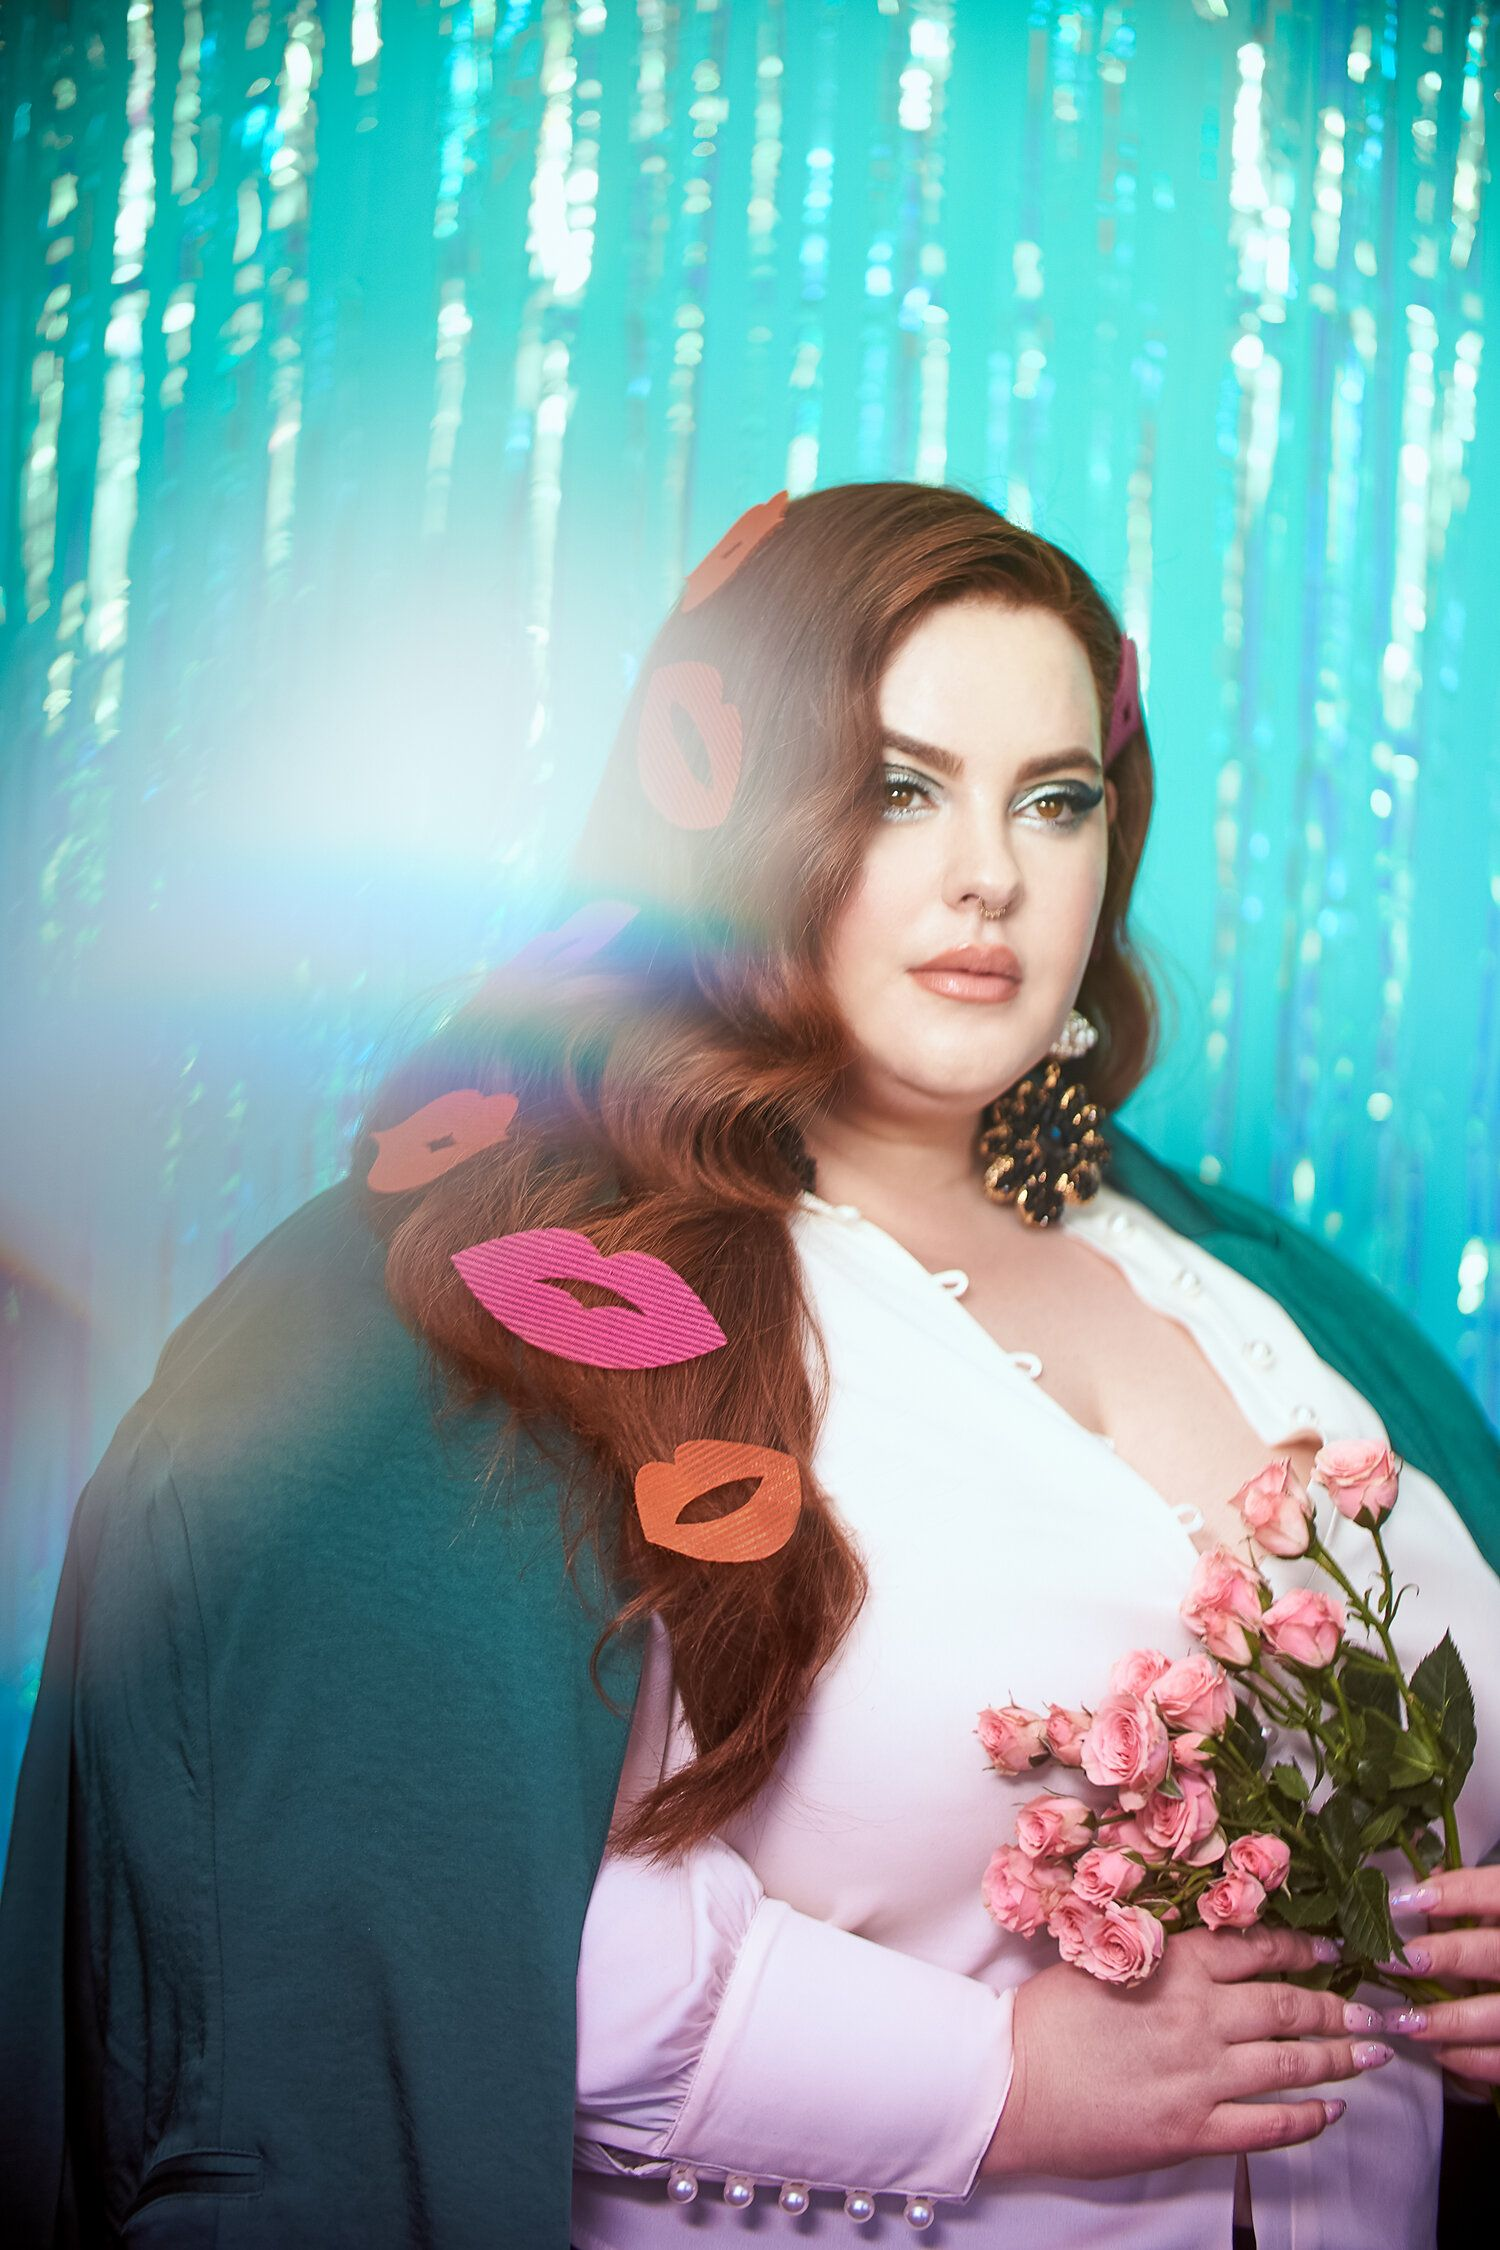 Tess Holliday Self Love Inspired Valentine's Day Shoot for